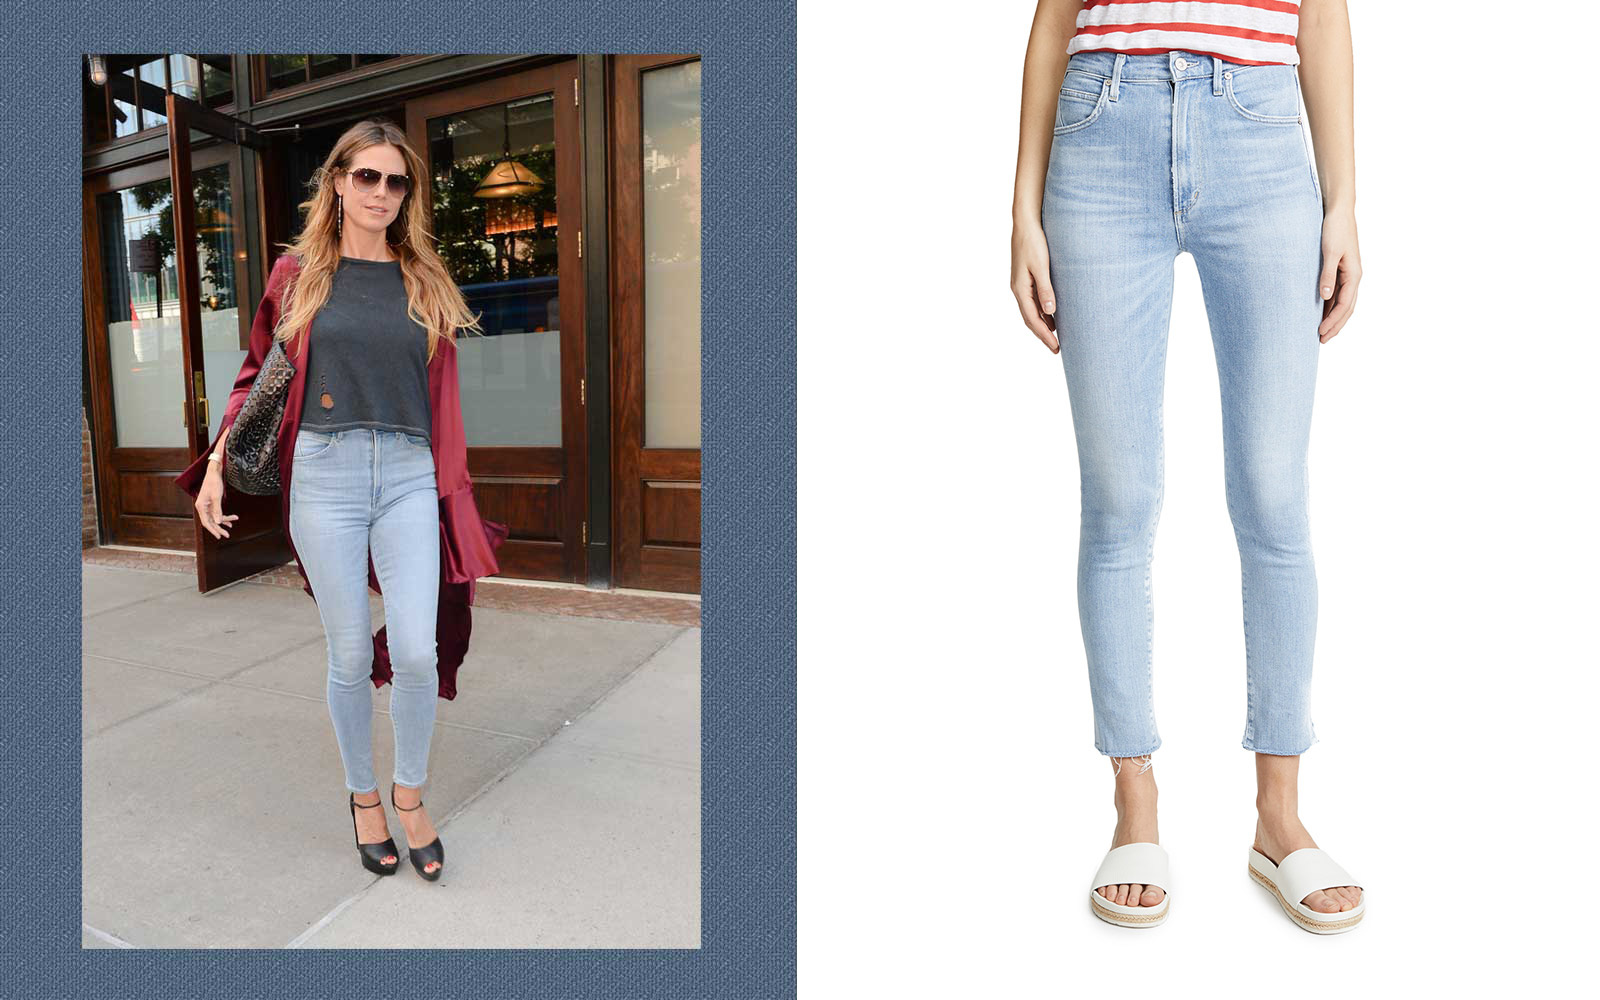 cee8a41e1dcf9 Celebrity-approved Jeans for Travel | Travel + Leisure